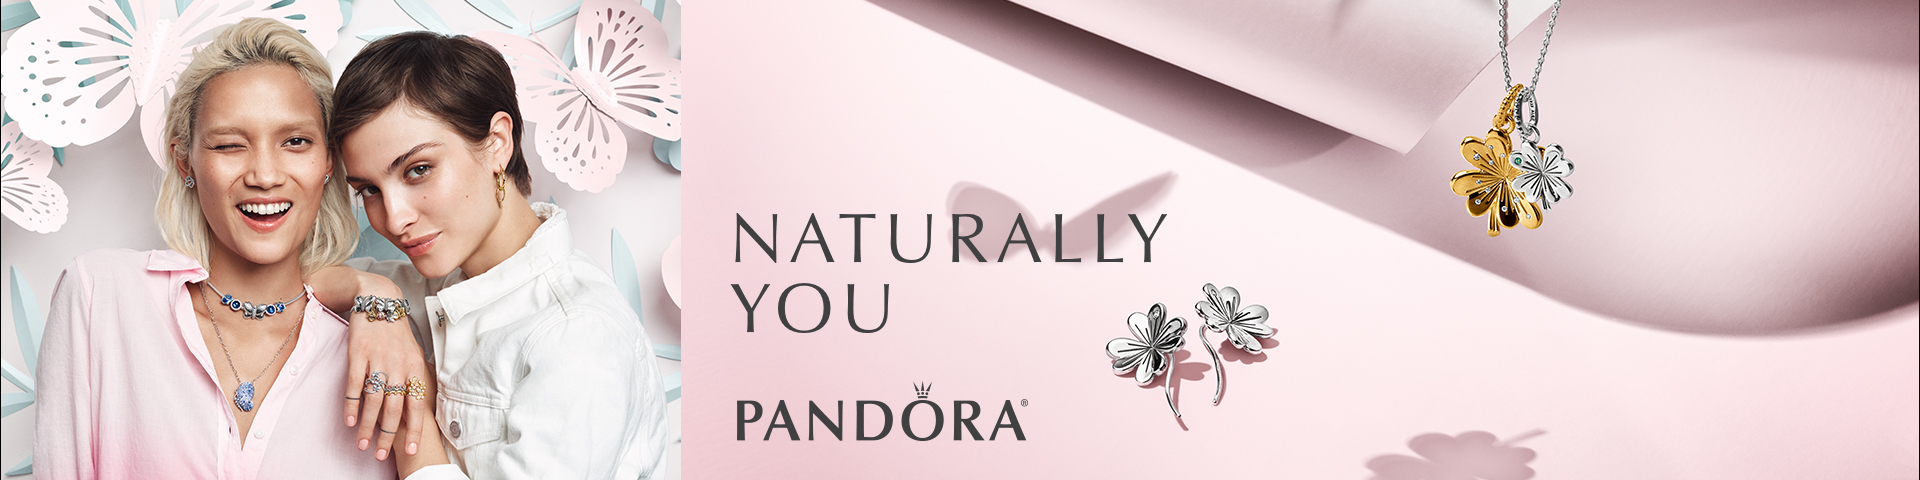 Yours Naturally Pandoara